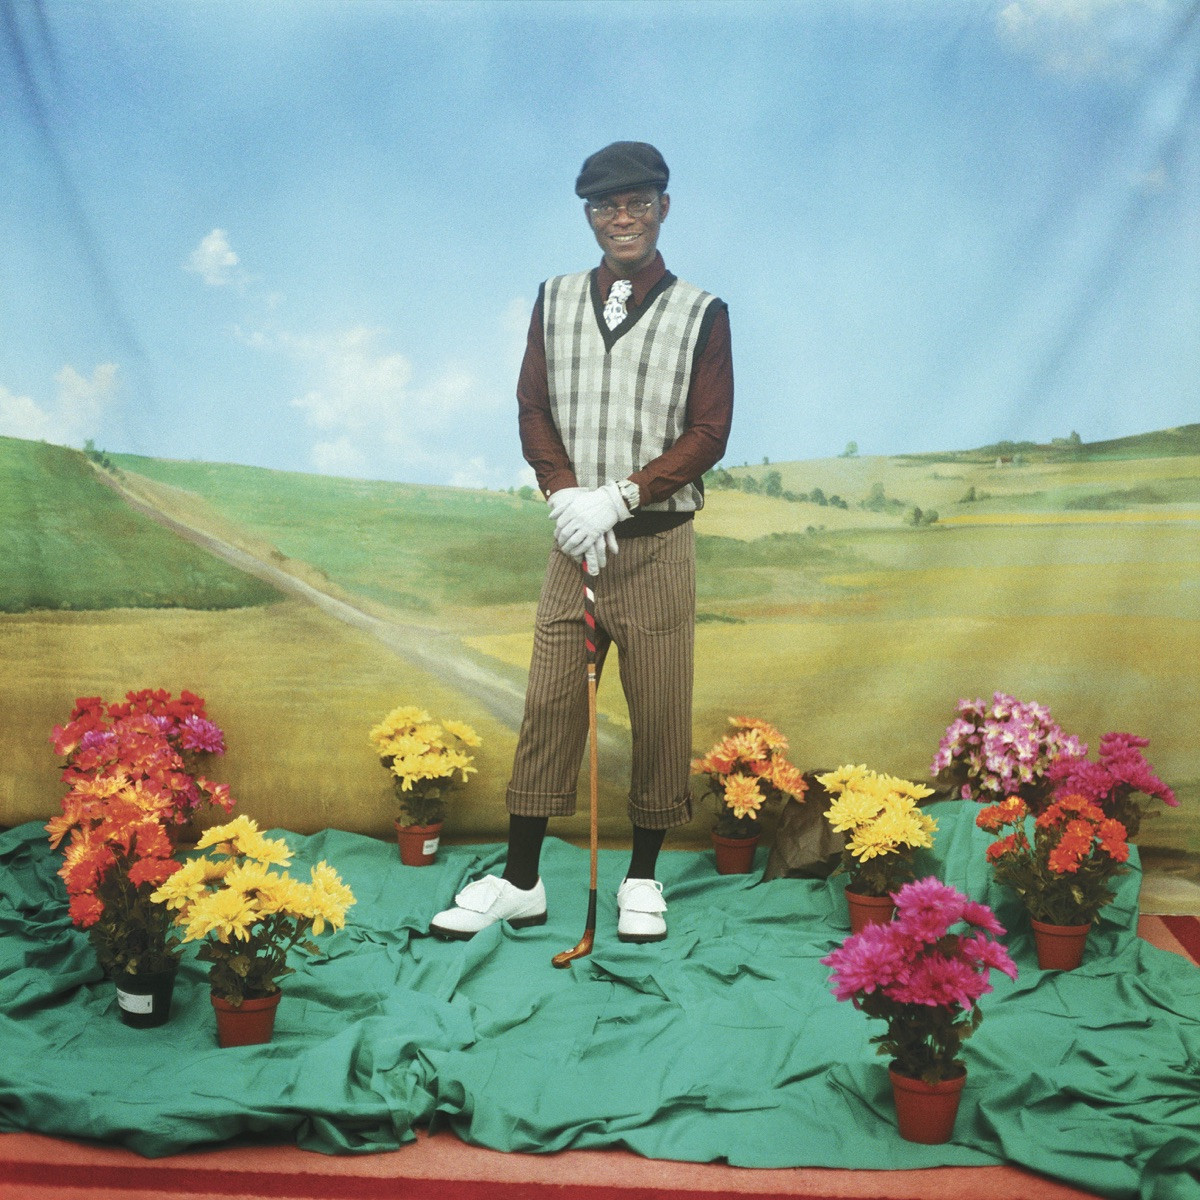 The Golfplayer 1997 © Samuel Fosso